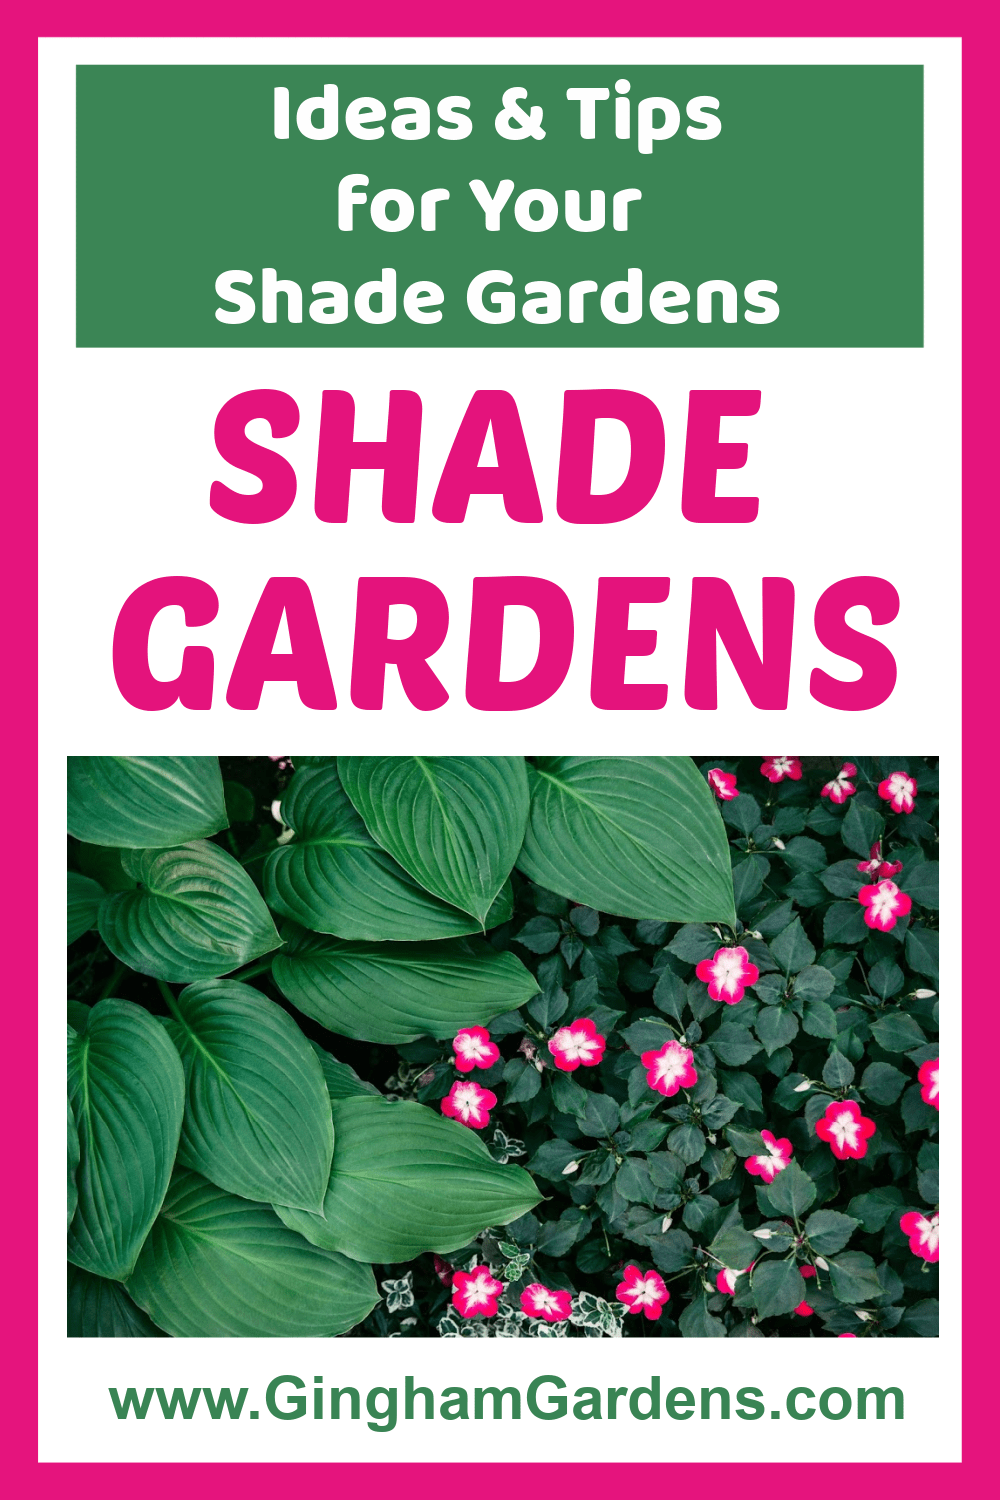 Image of Shade Garden Plants with Text Overlay - Ideas and Tips for your Shade Garden